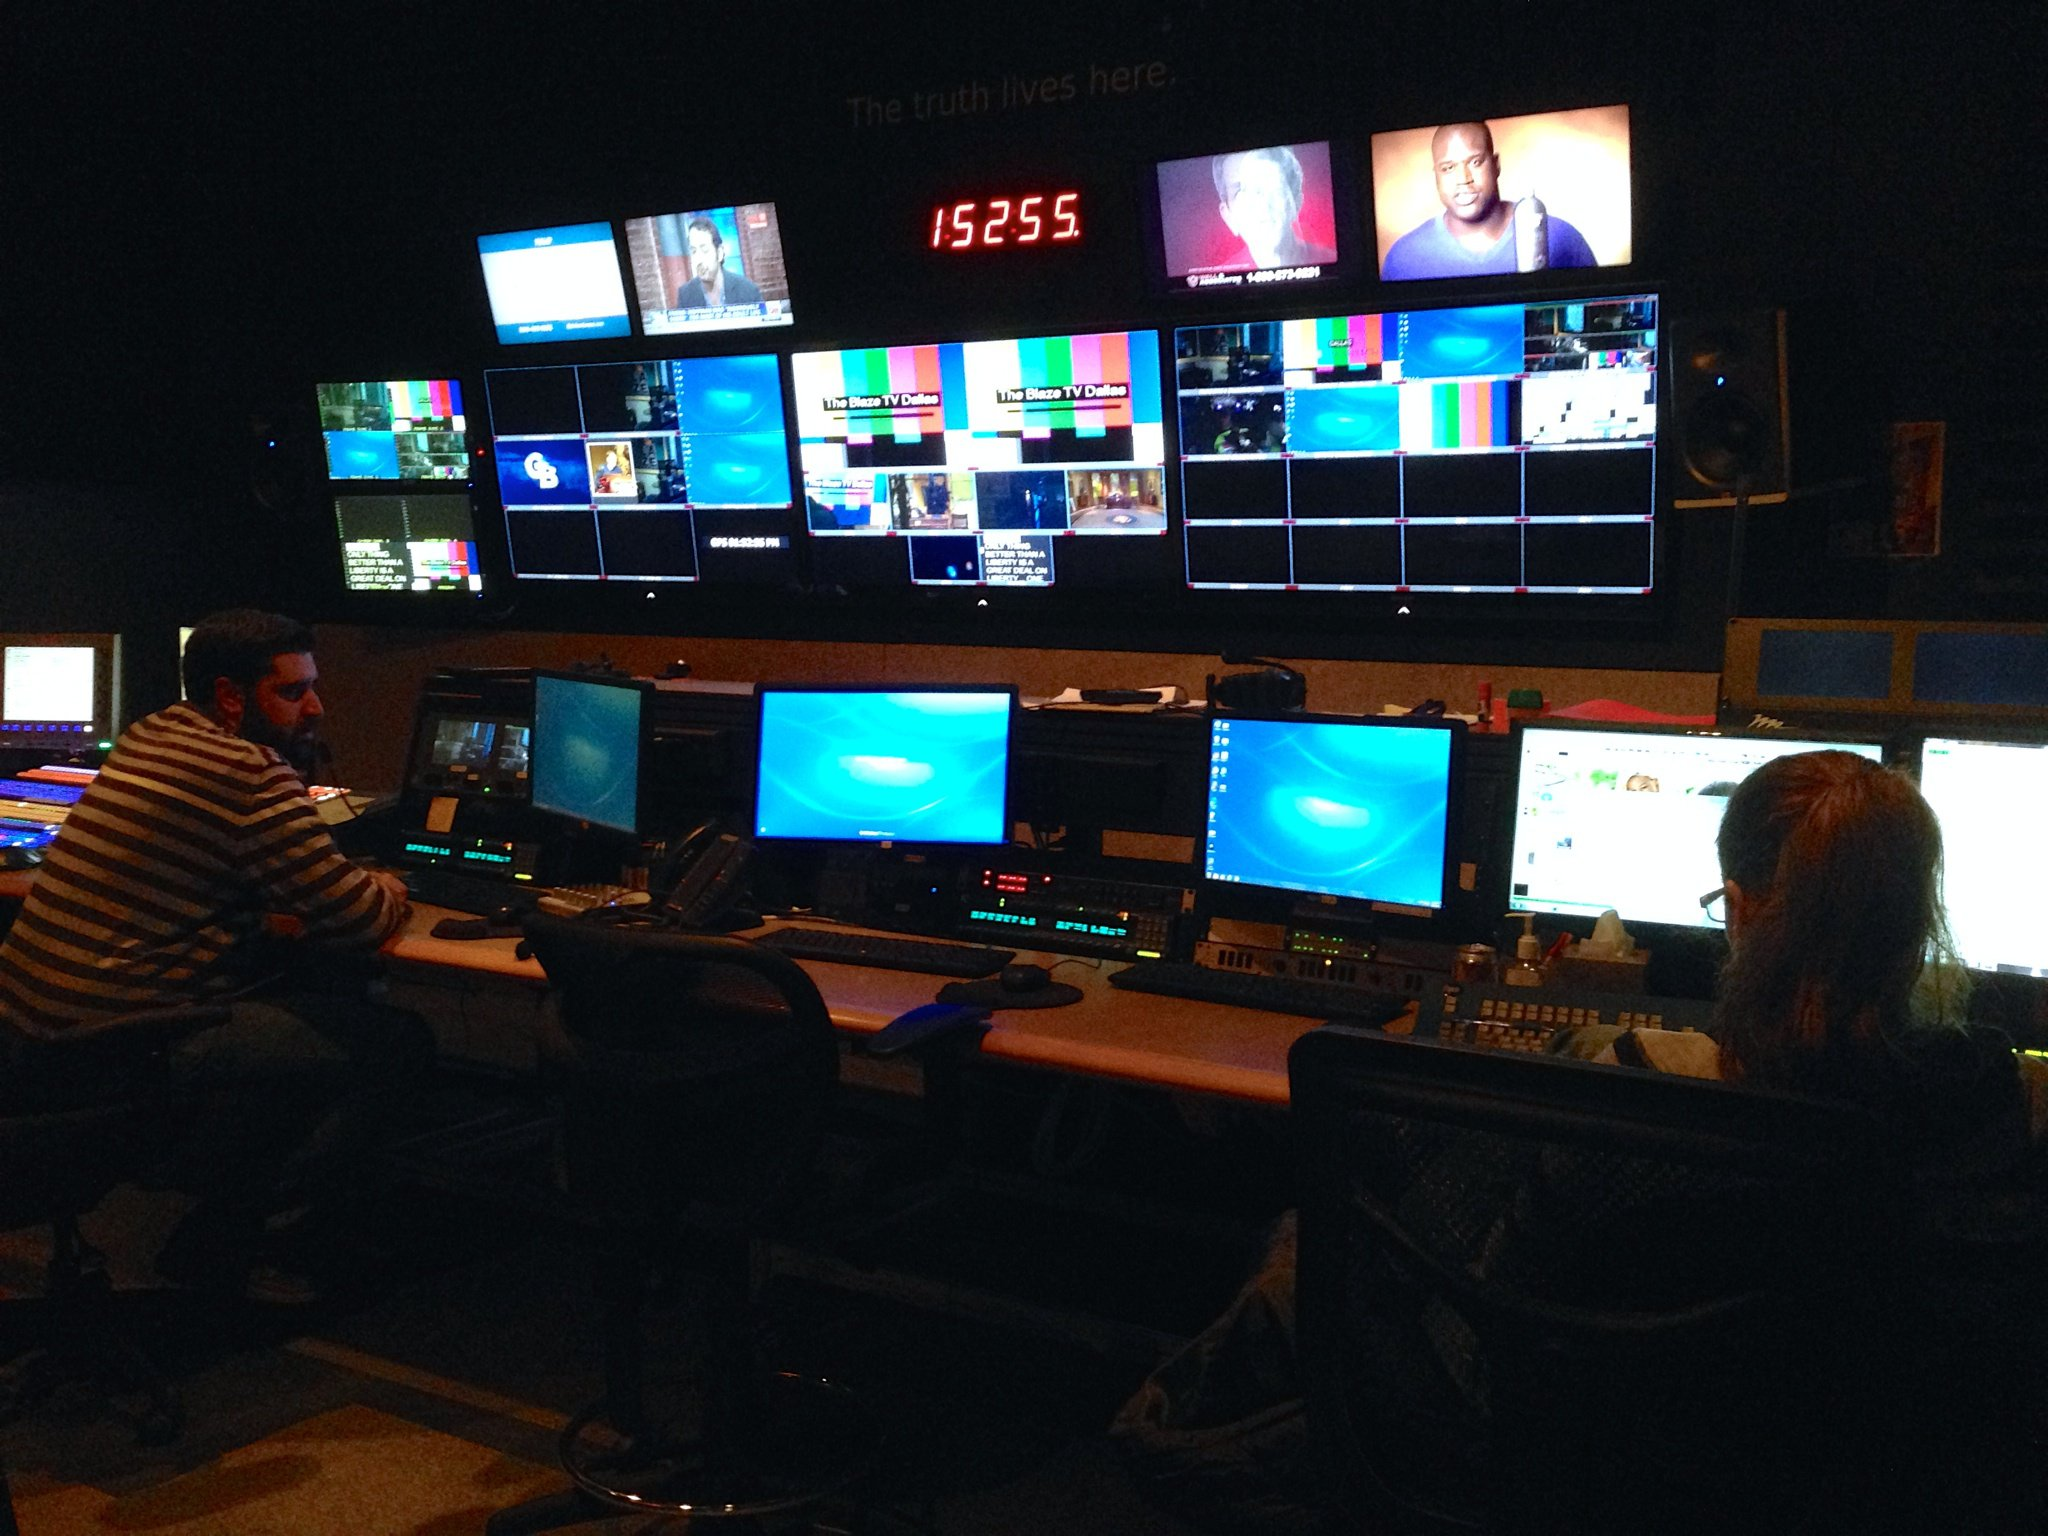 Video Engineers monitoring broadcast at CRM studios (background)